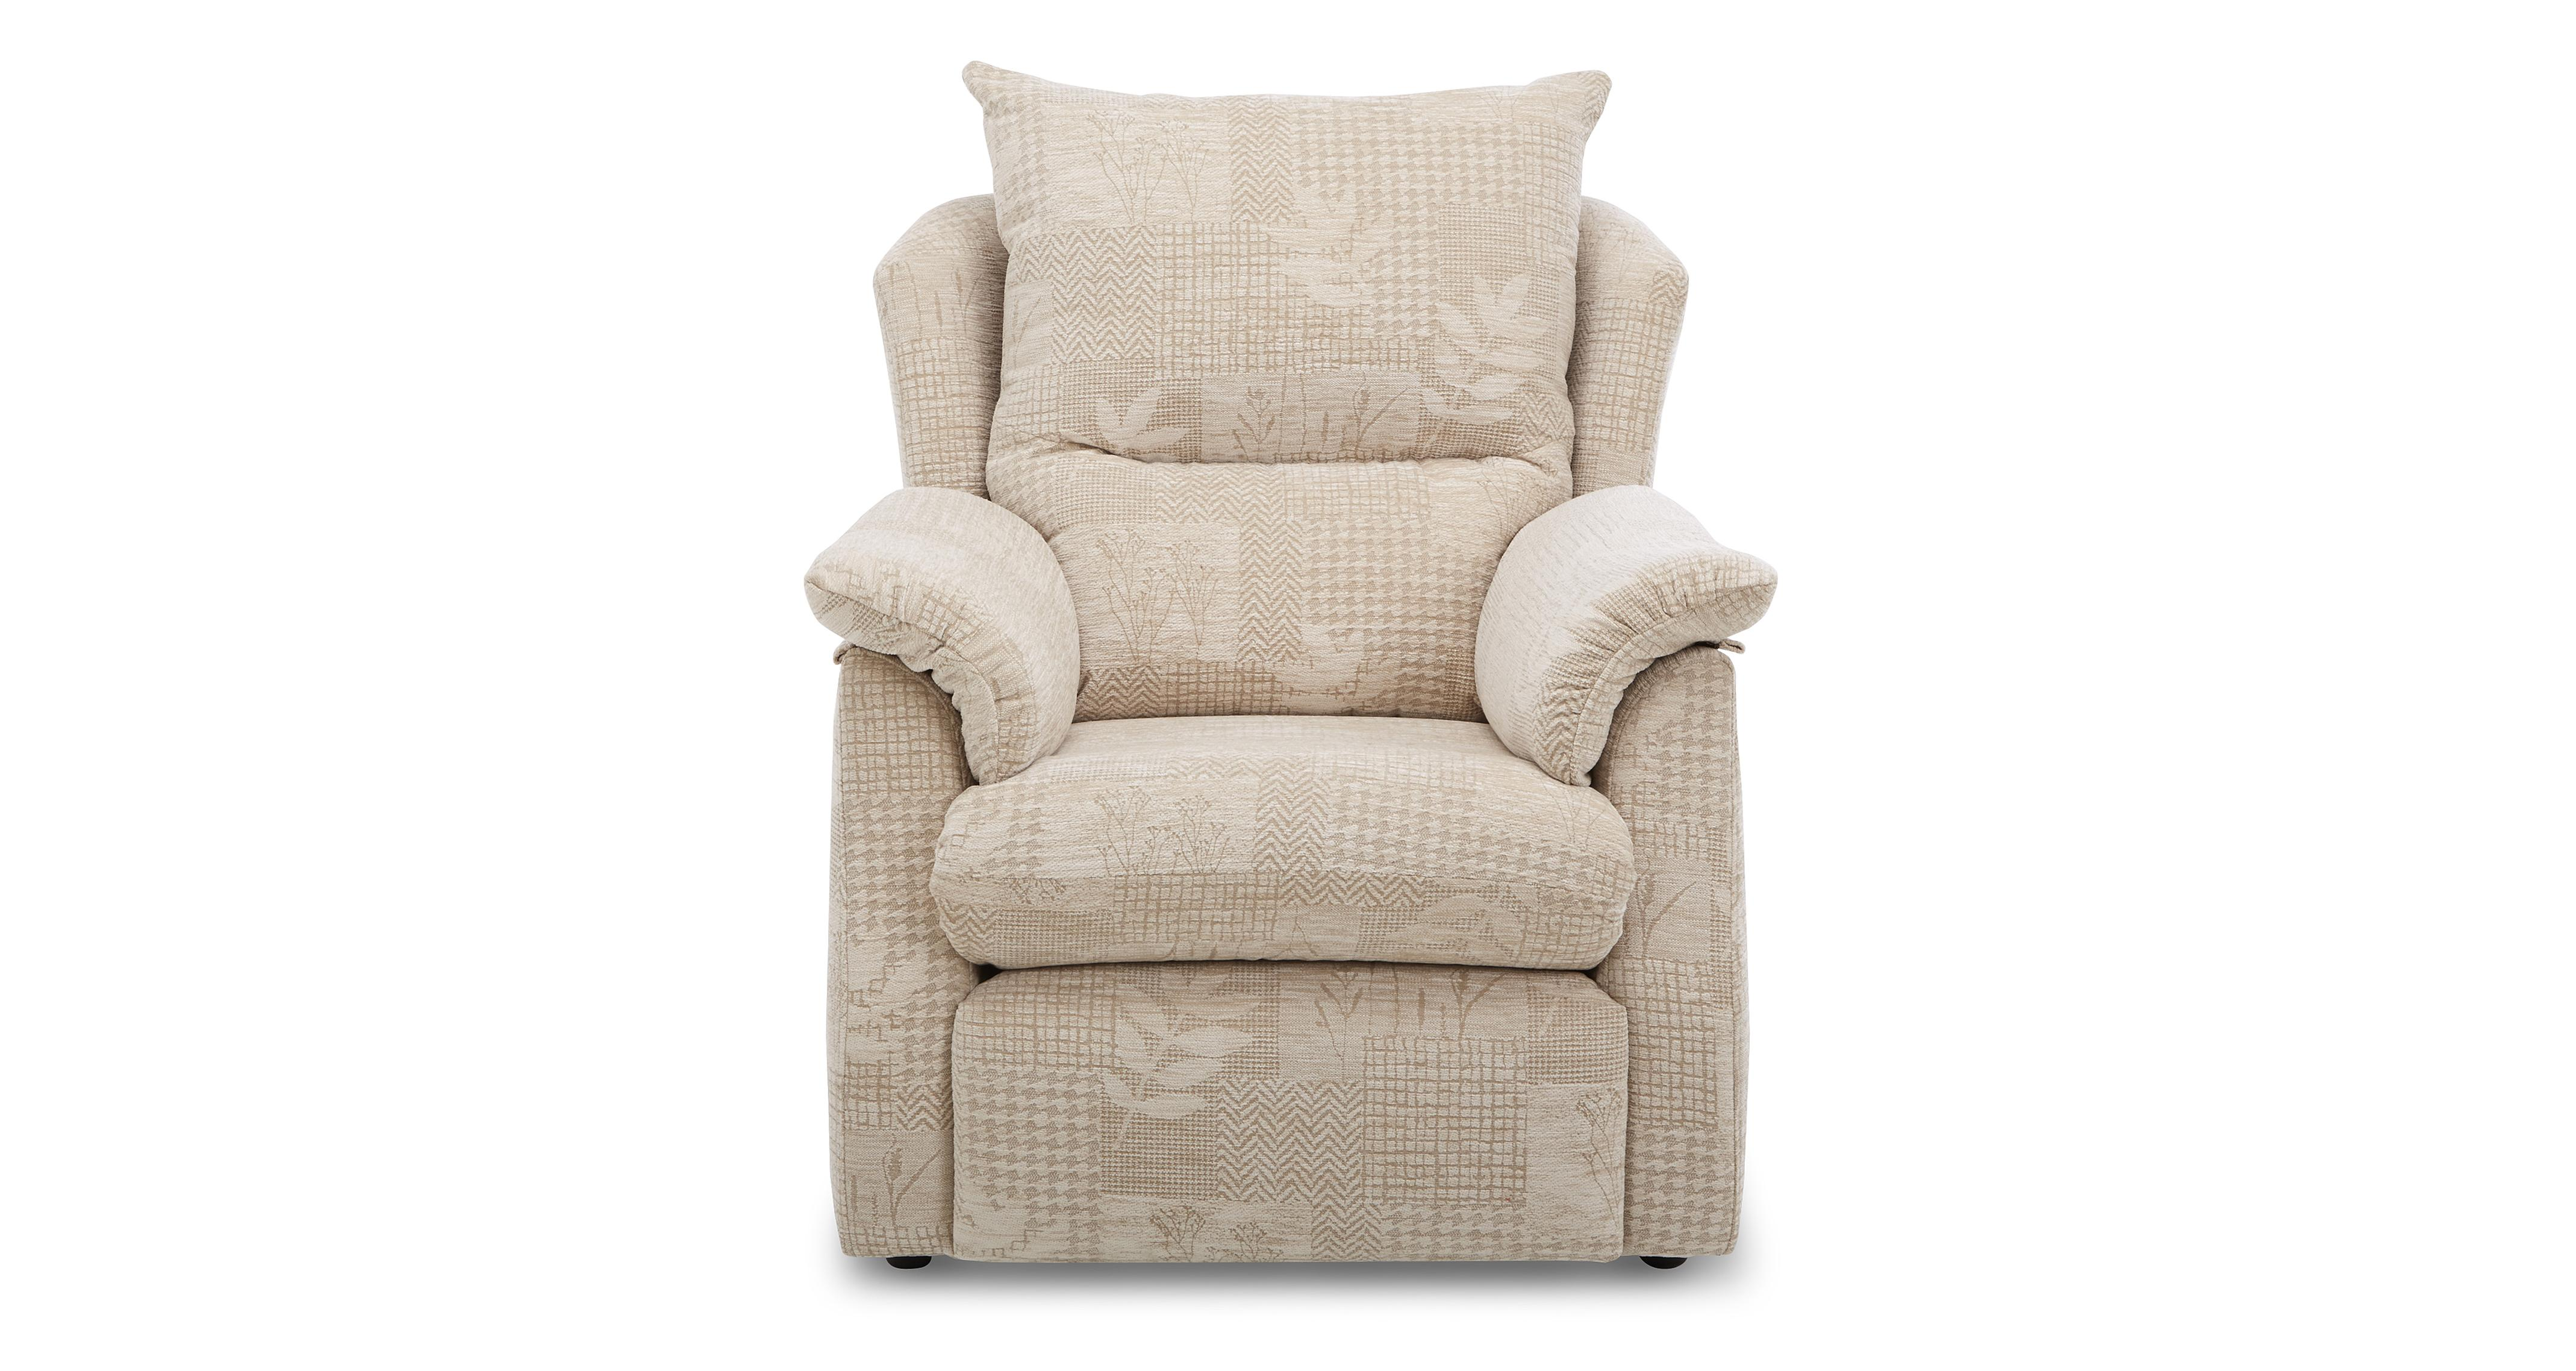 Stow fabric c small electric recliner chair g plan fabric for Small fabric chair